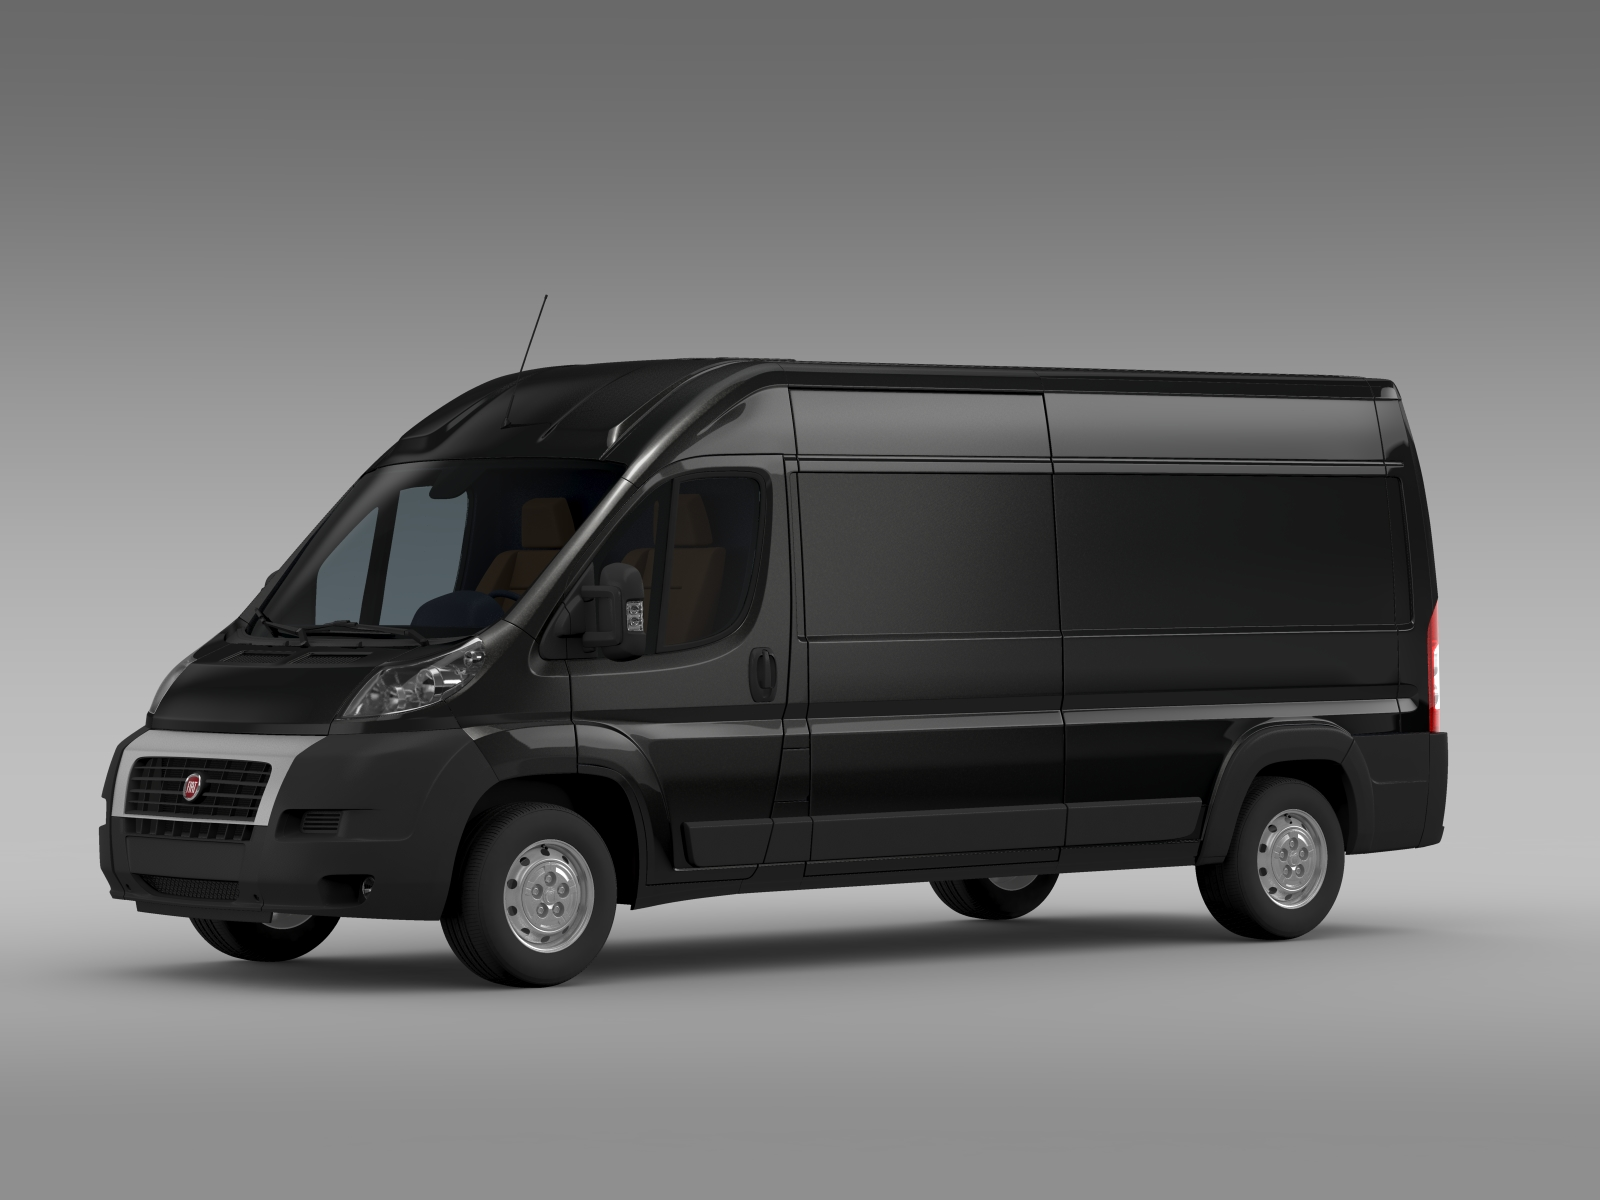 fiat ducato maxi van l3h2 2006 2014 3d model. Black Bedroom Furniture Sets. Home Design Ideas